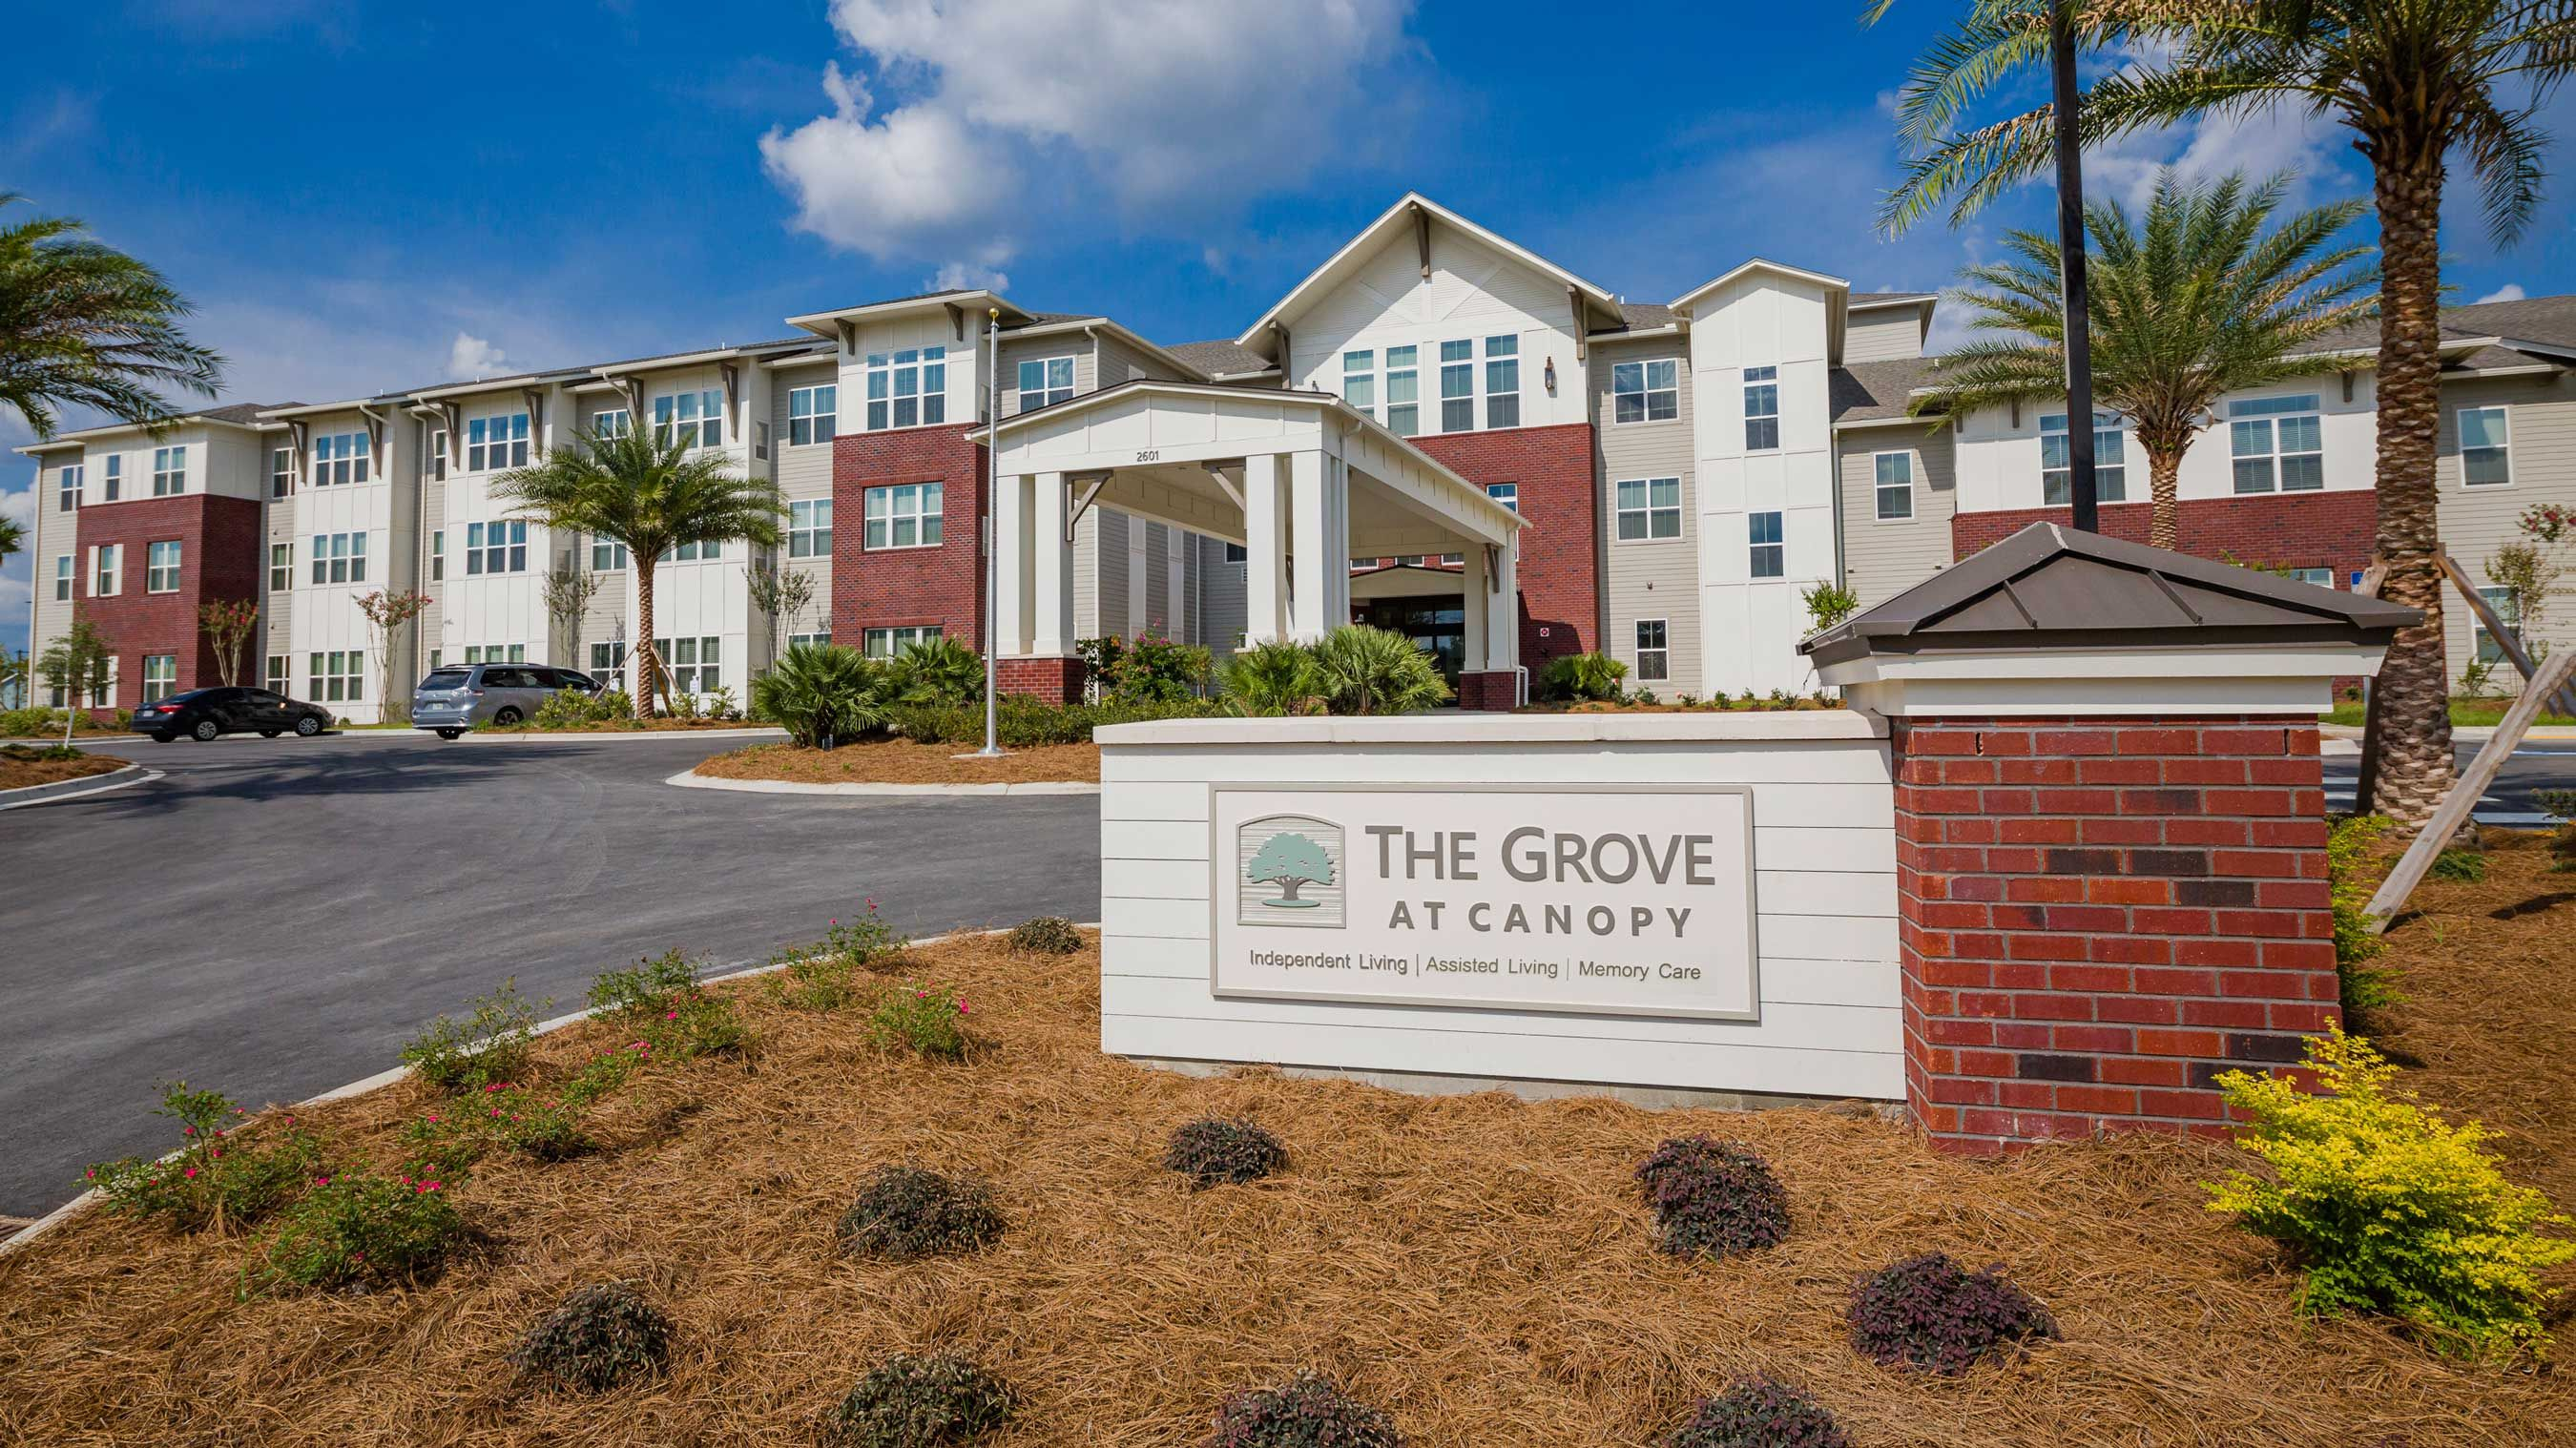 The Grove at Canopy - Assisted Living in Tallahassee Florida